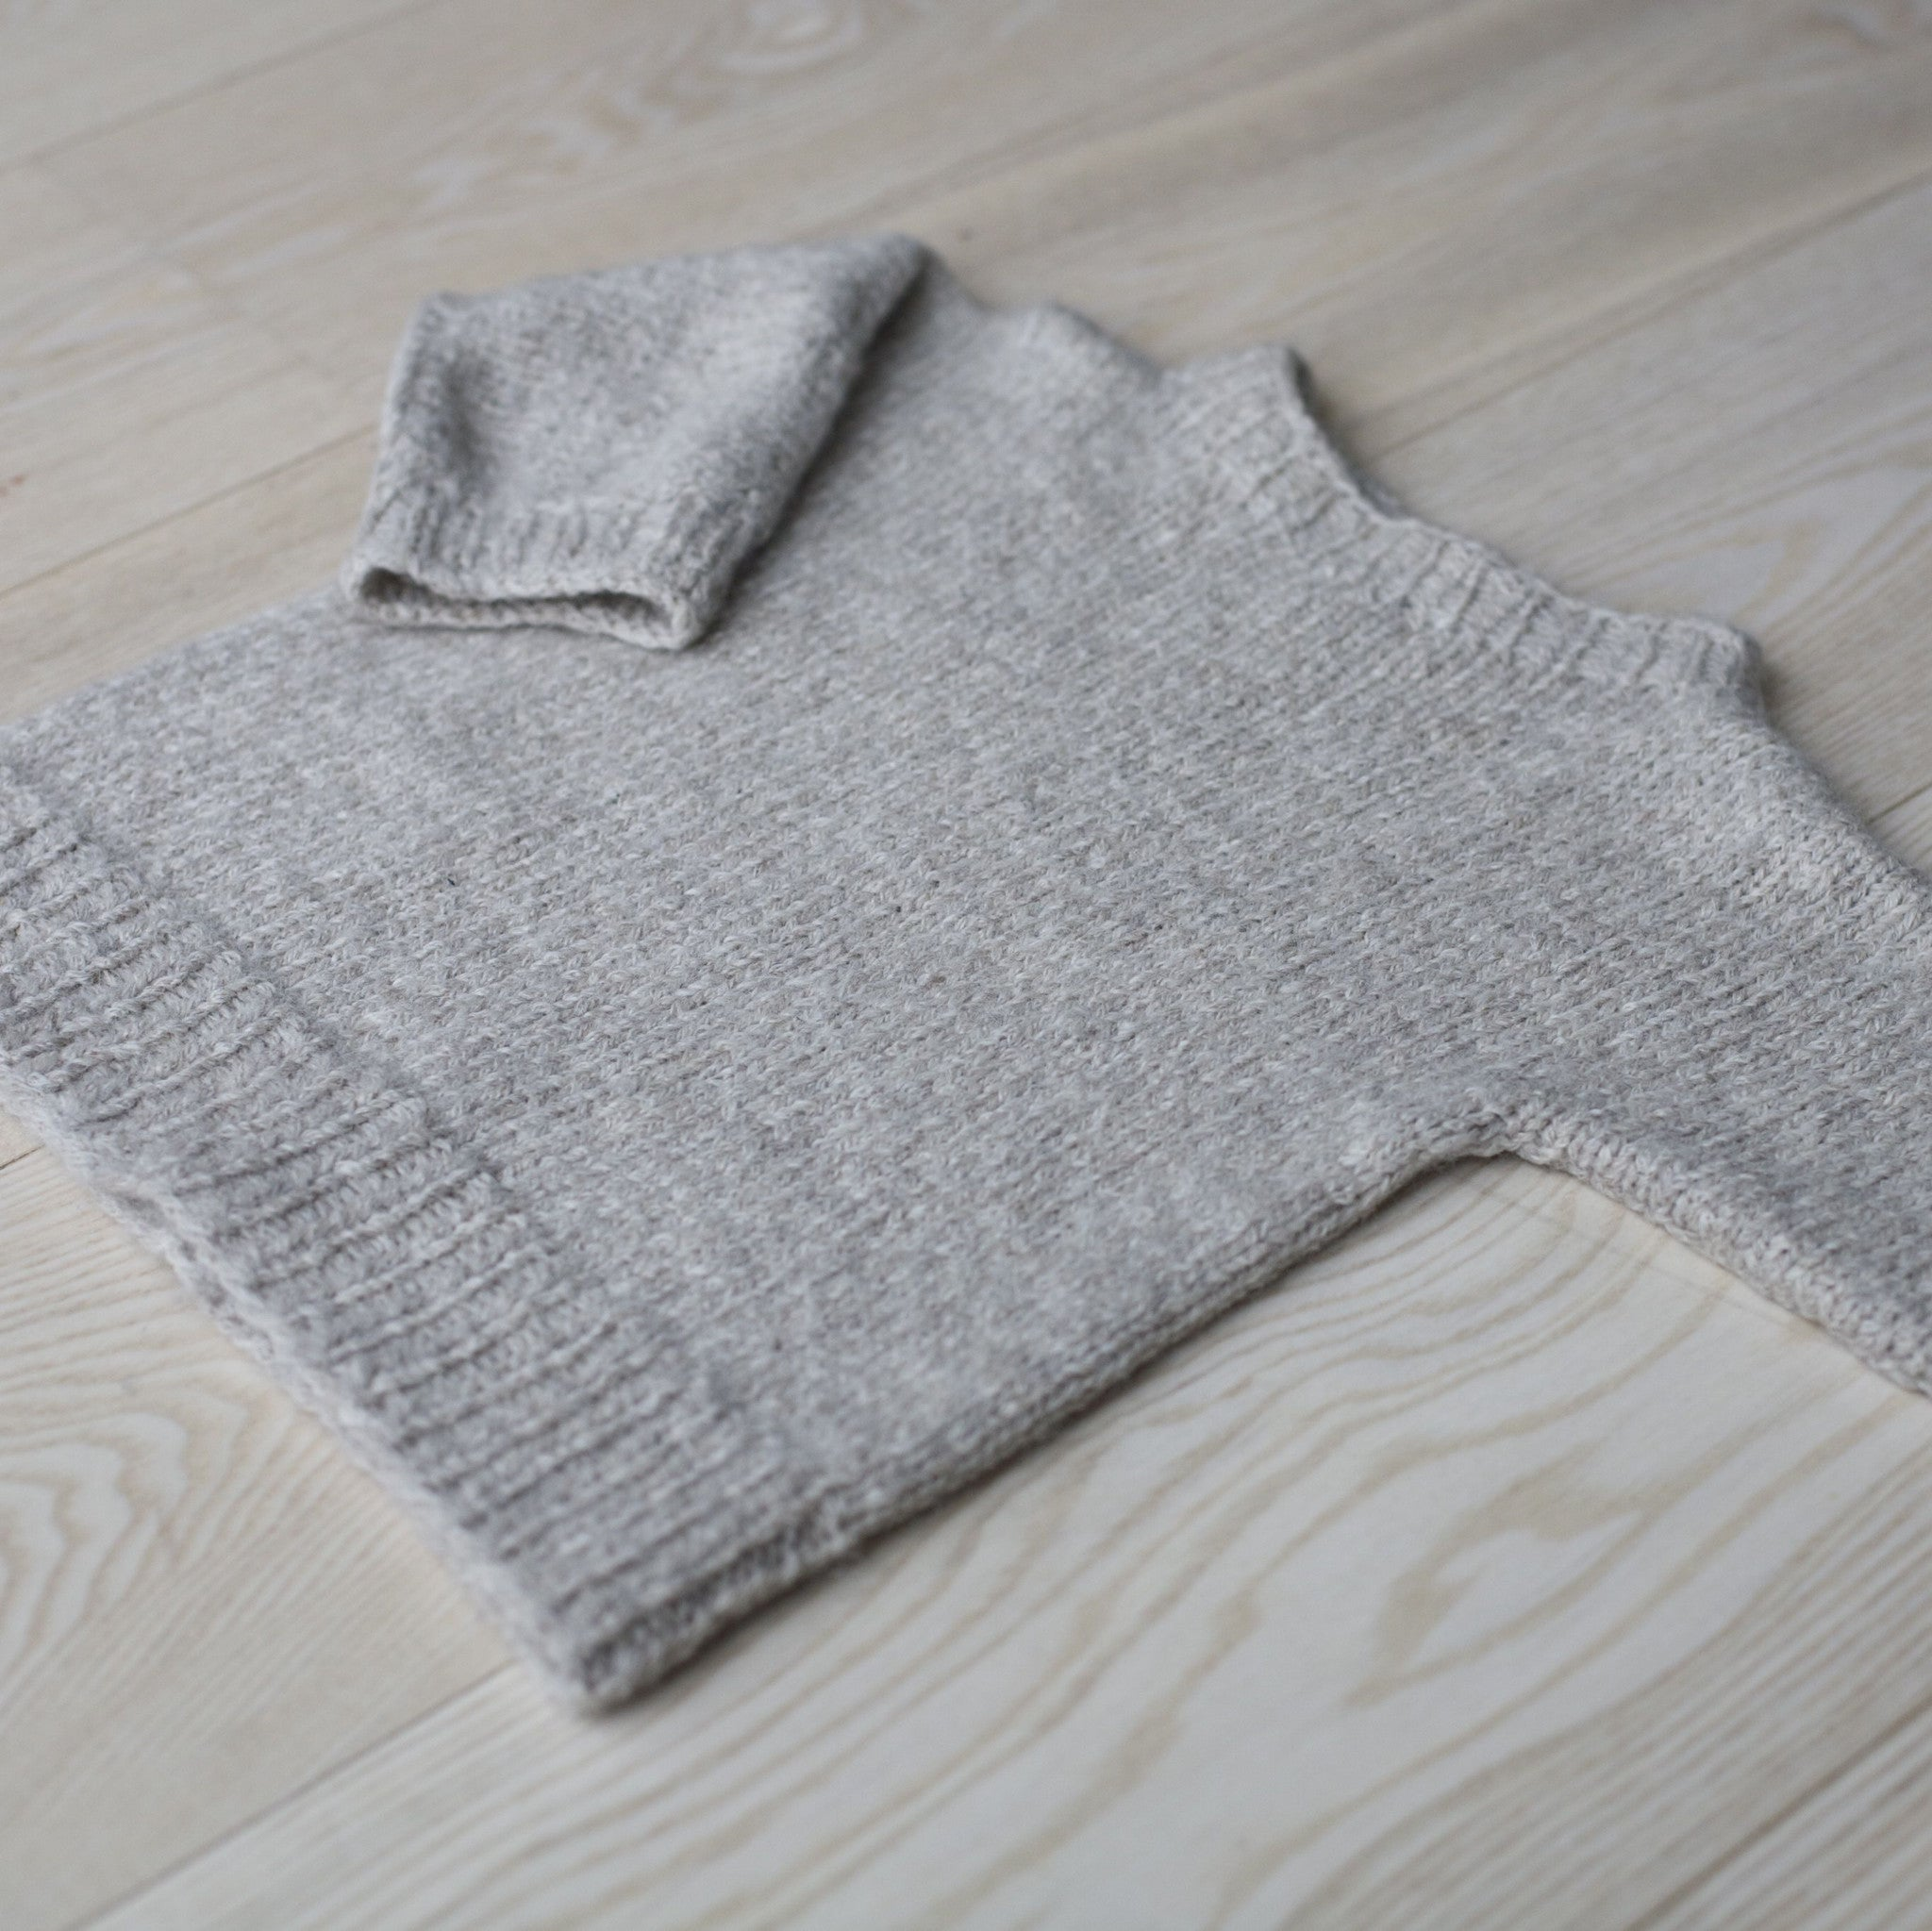 Kul kosegenser / cool cozy sweater (norwegain and english)